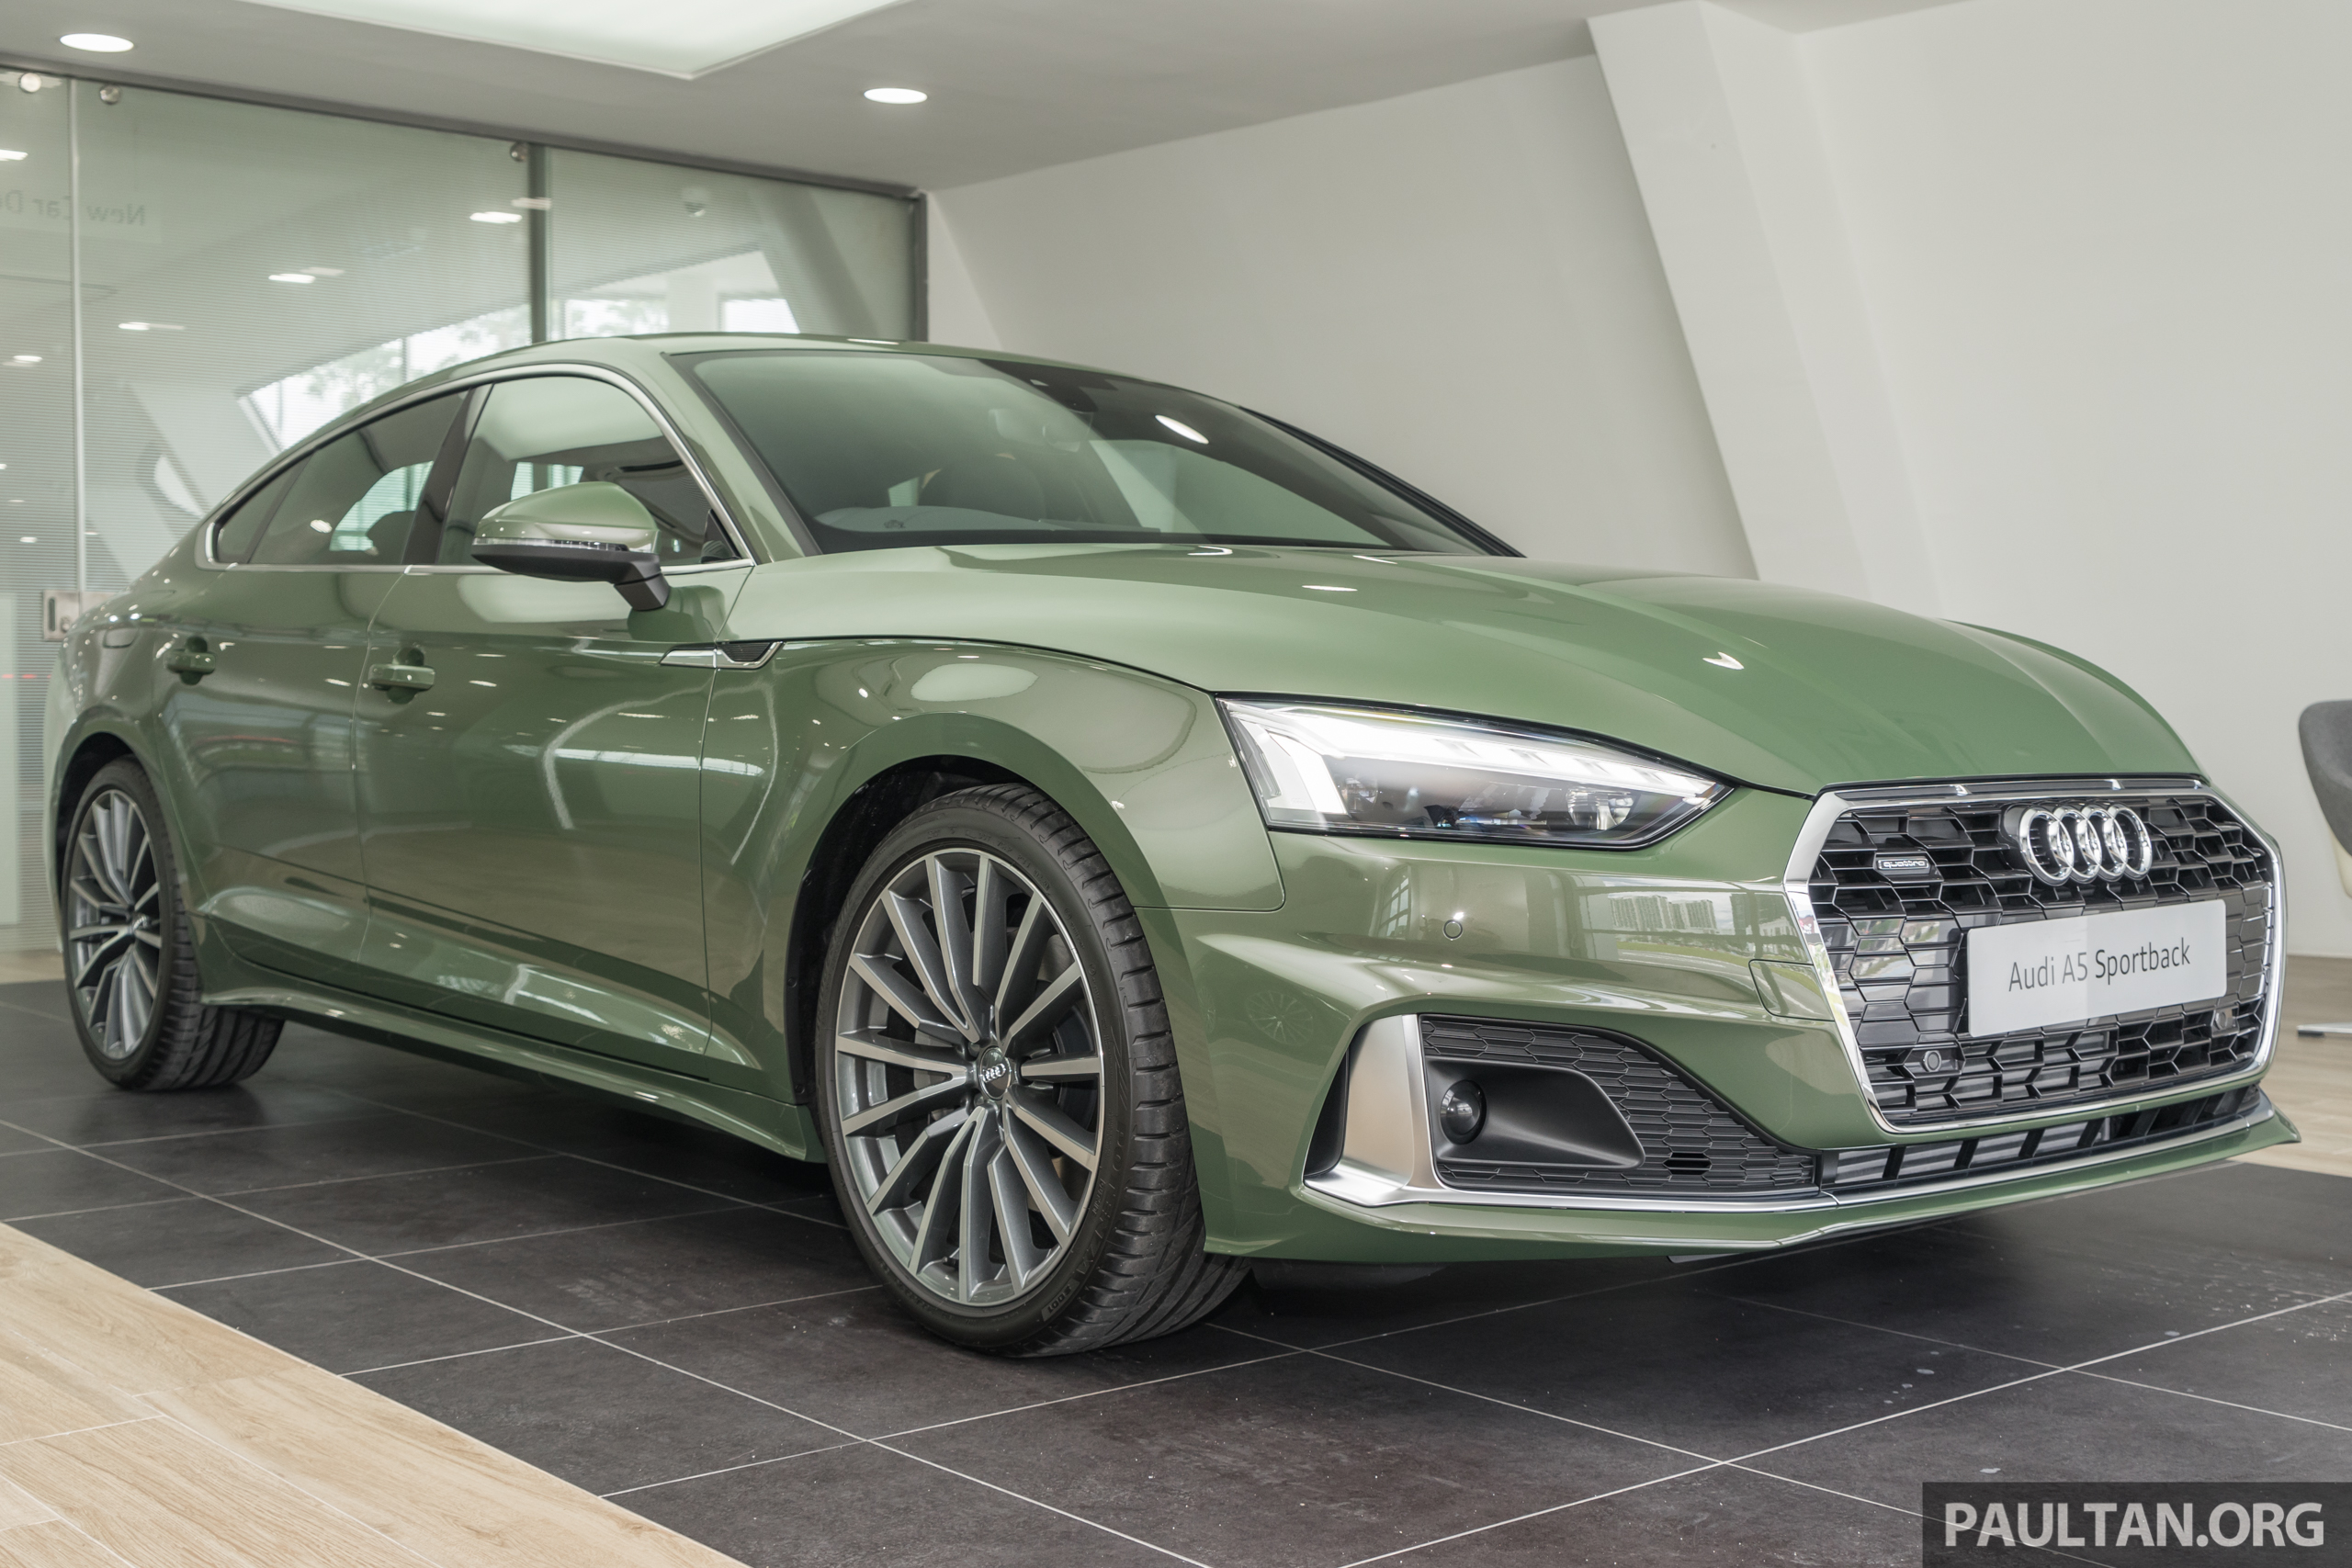 2020 Audi A5 Sportback Facelift Previewed In M Sia 190 Ps 2 0 Tfsi And 249 Ps Quattro Variants Offered Paultan Org